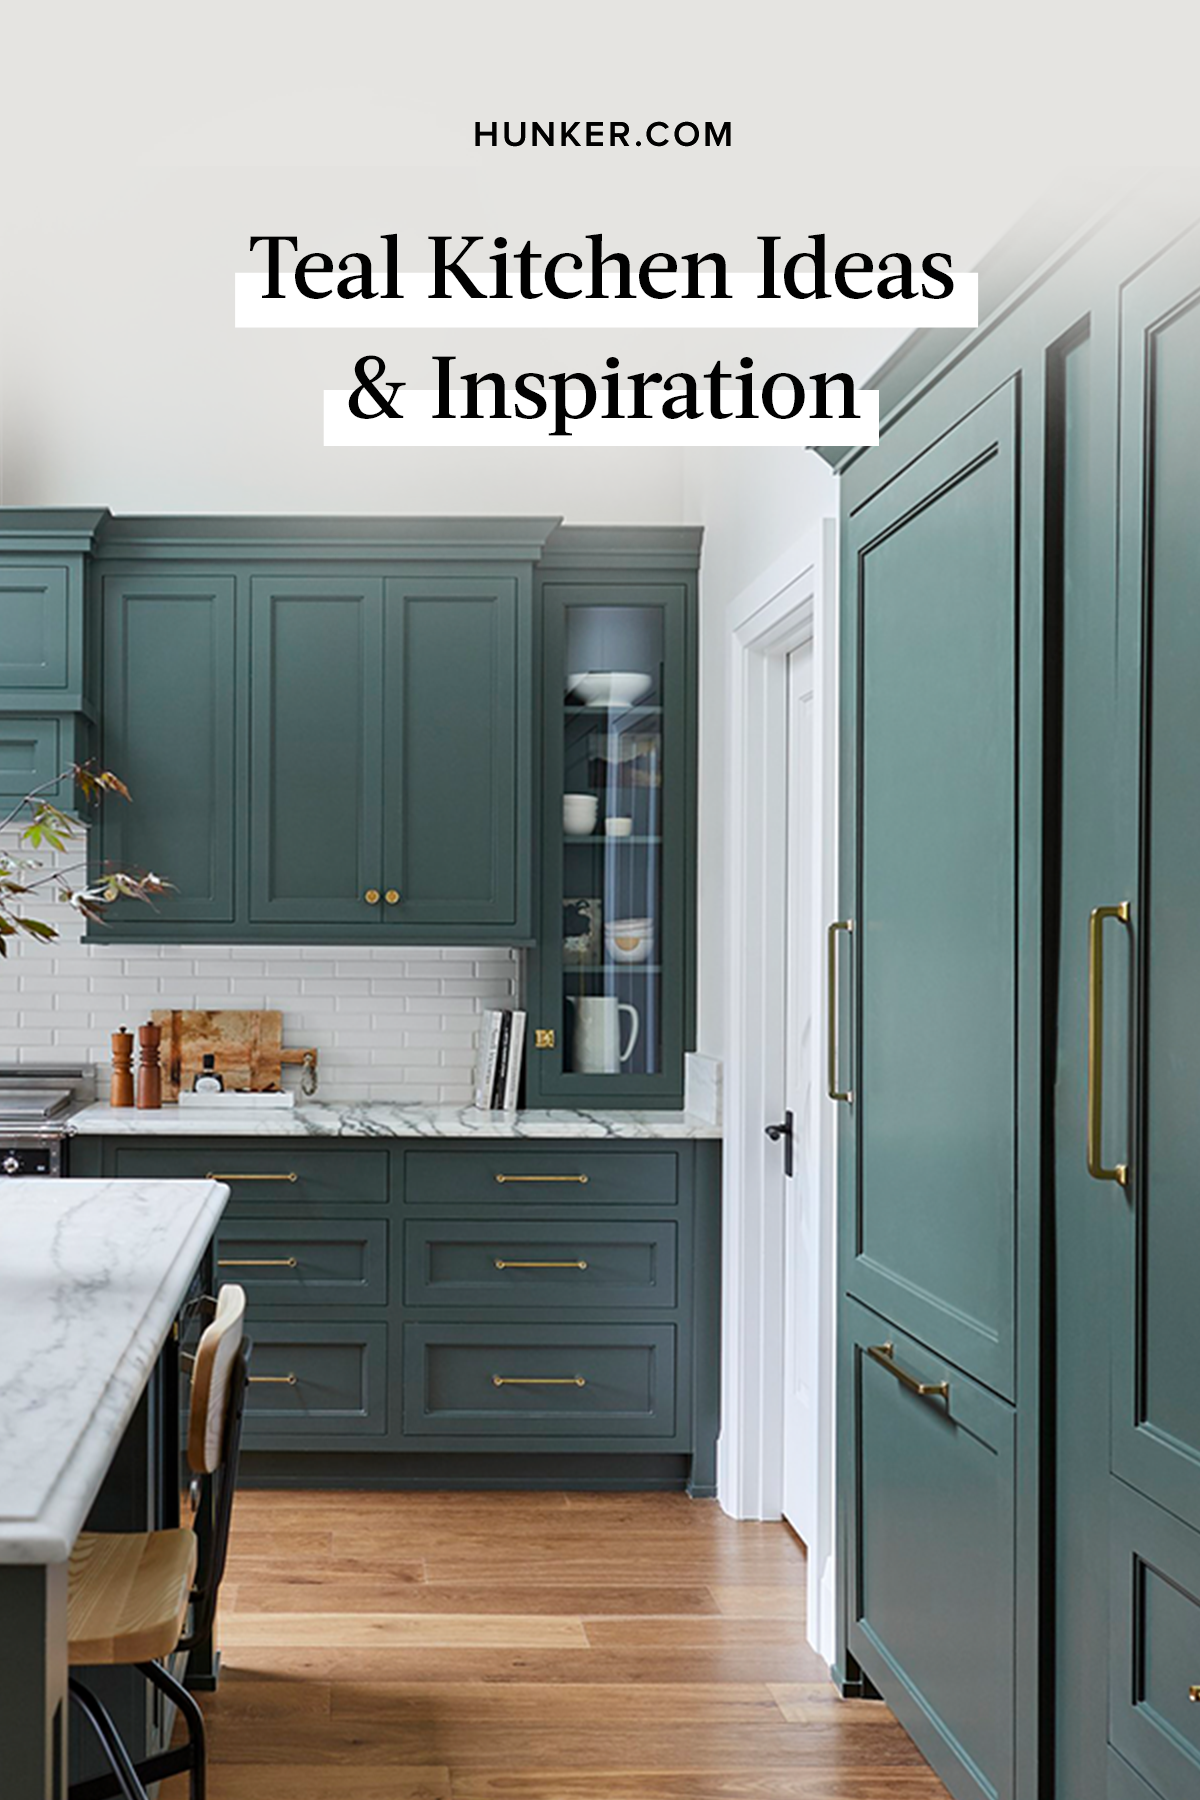 TBH, These Teal Kitchens Are Kind of Perfect | Teal ...